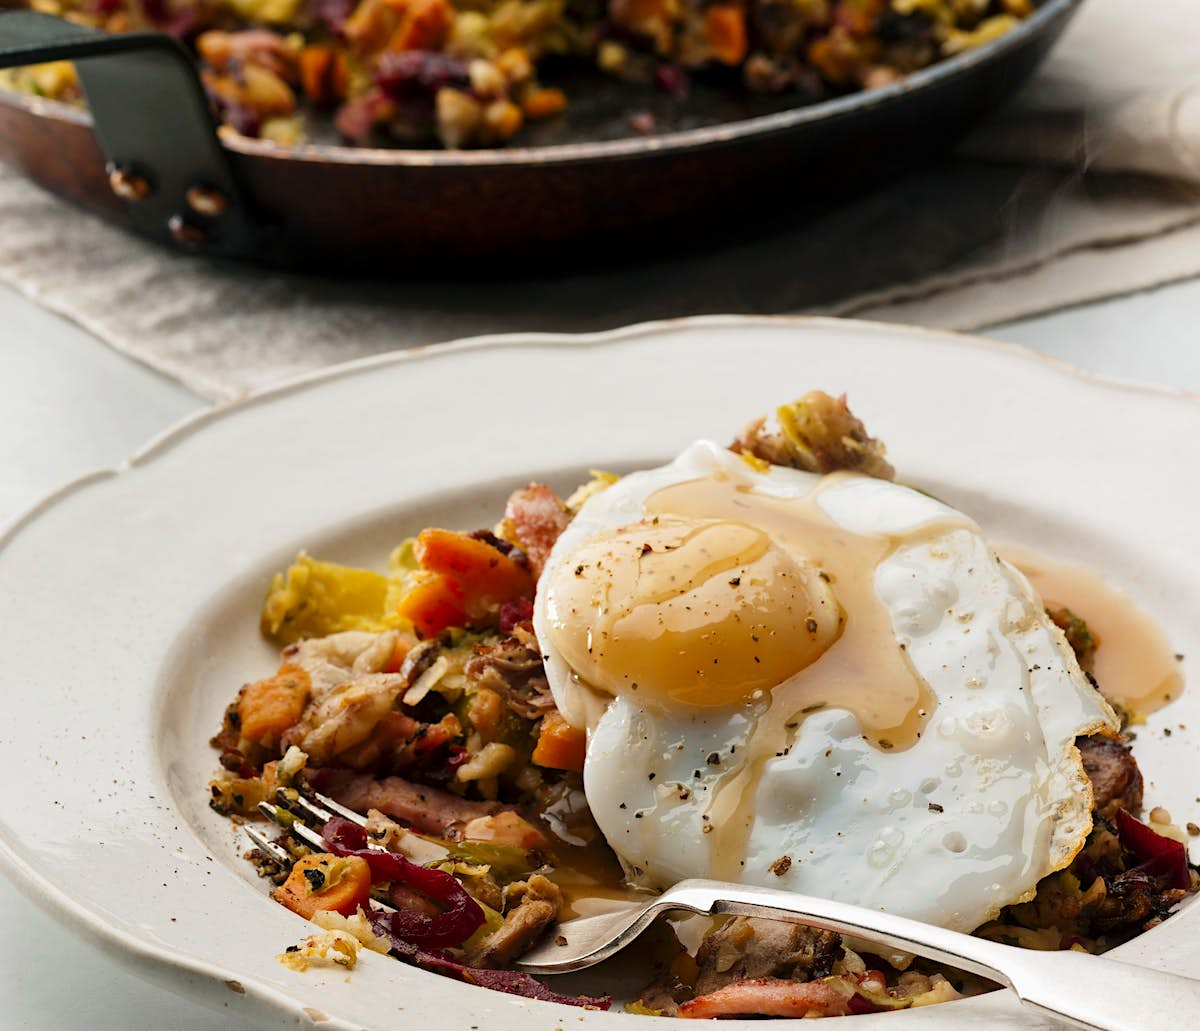 How to make British bubble and squeak